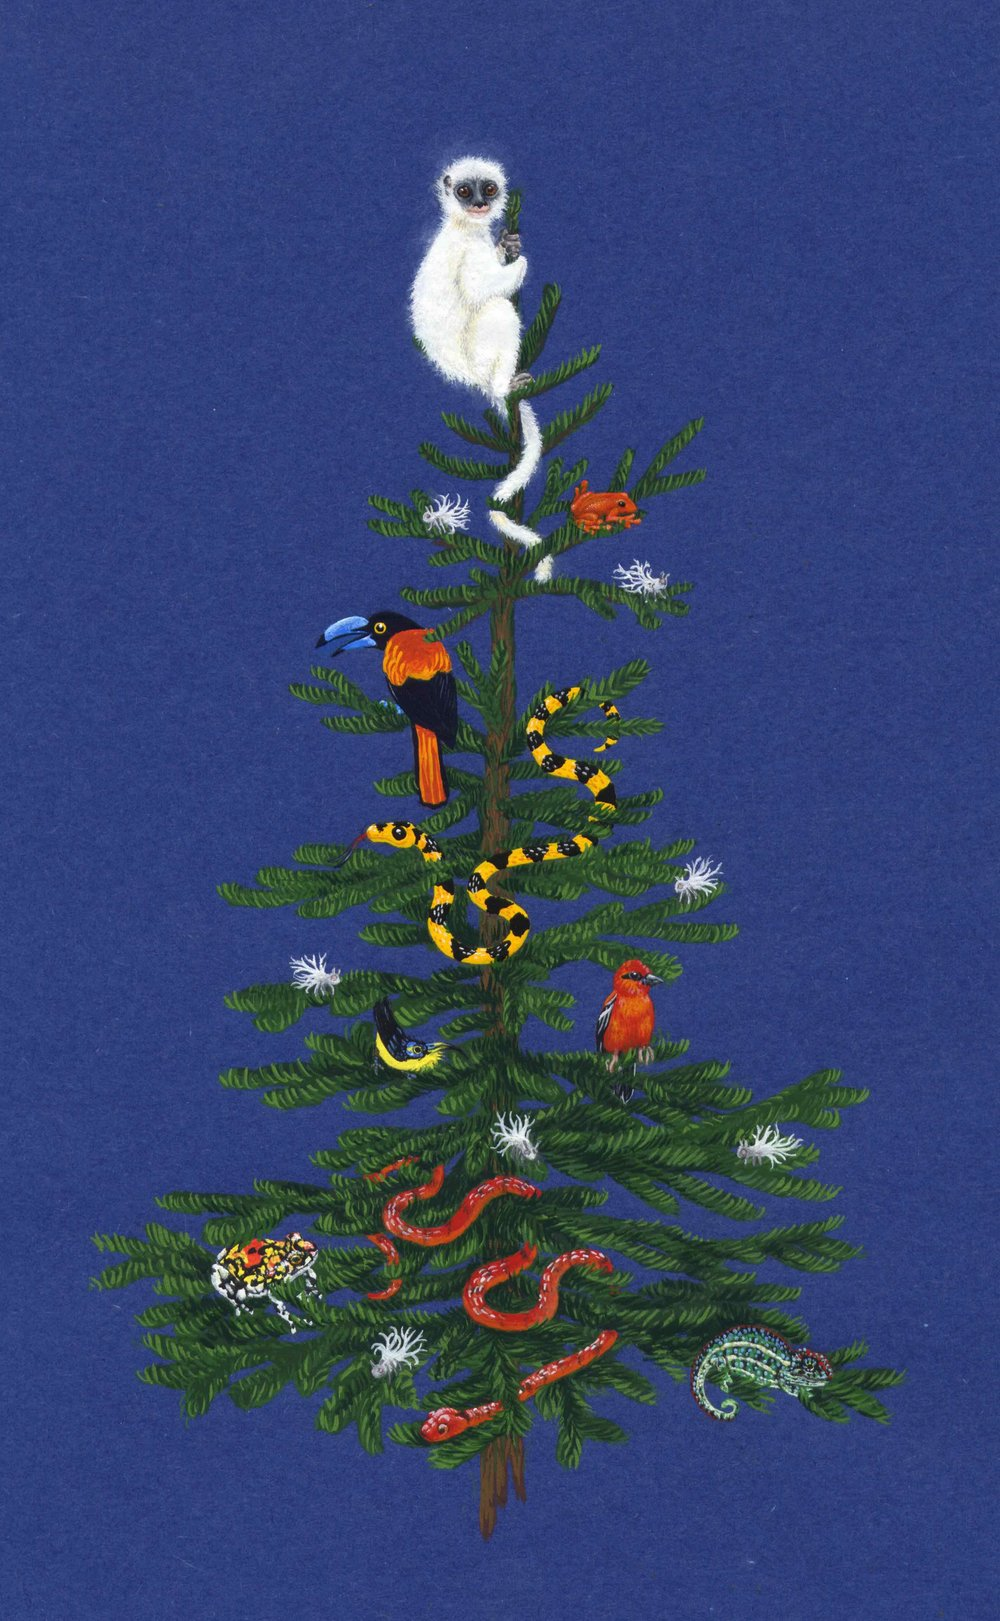 Malagasy Wildlife Christmas Card (gouache), 2010. Sold in aid of SEED Madagascar.